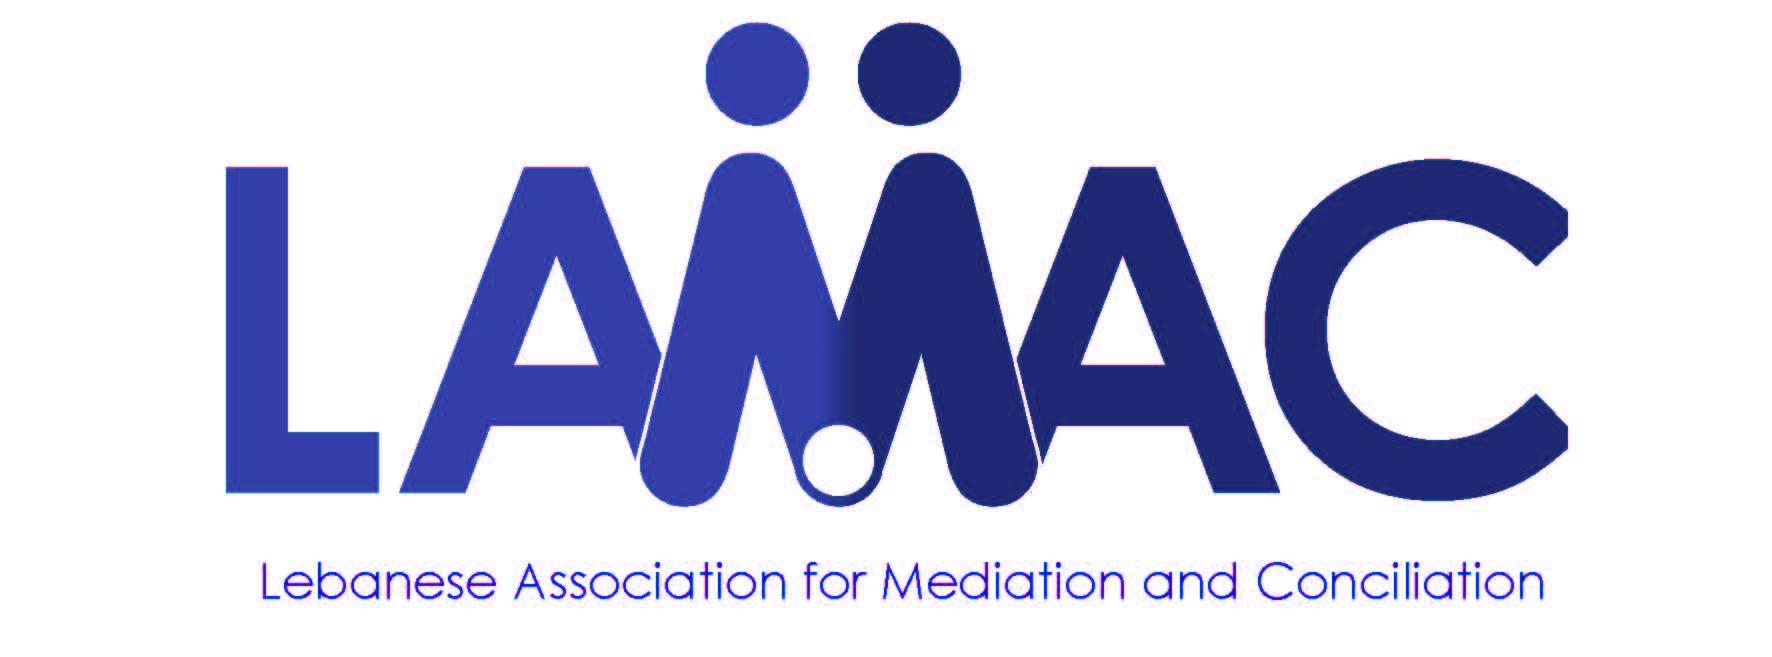 Lebanese Association for Mediation and Conciliation (LAMAC)